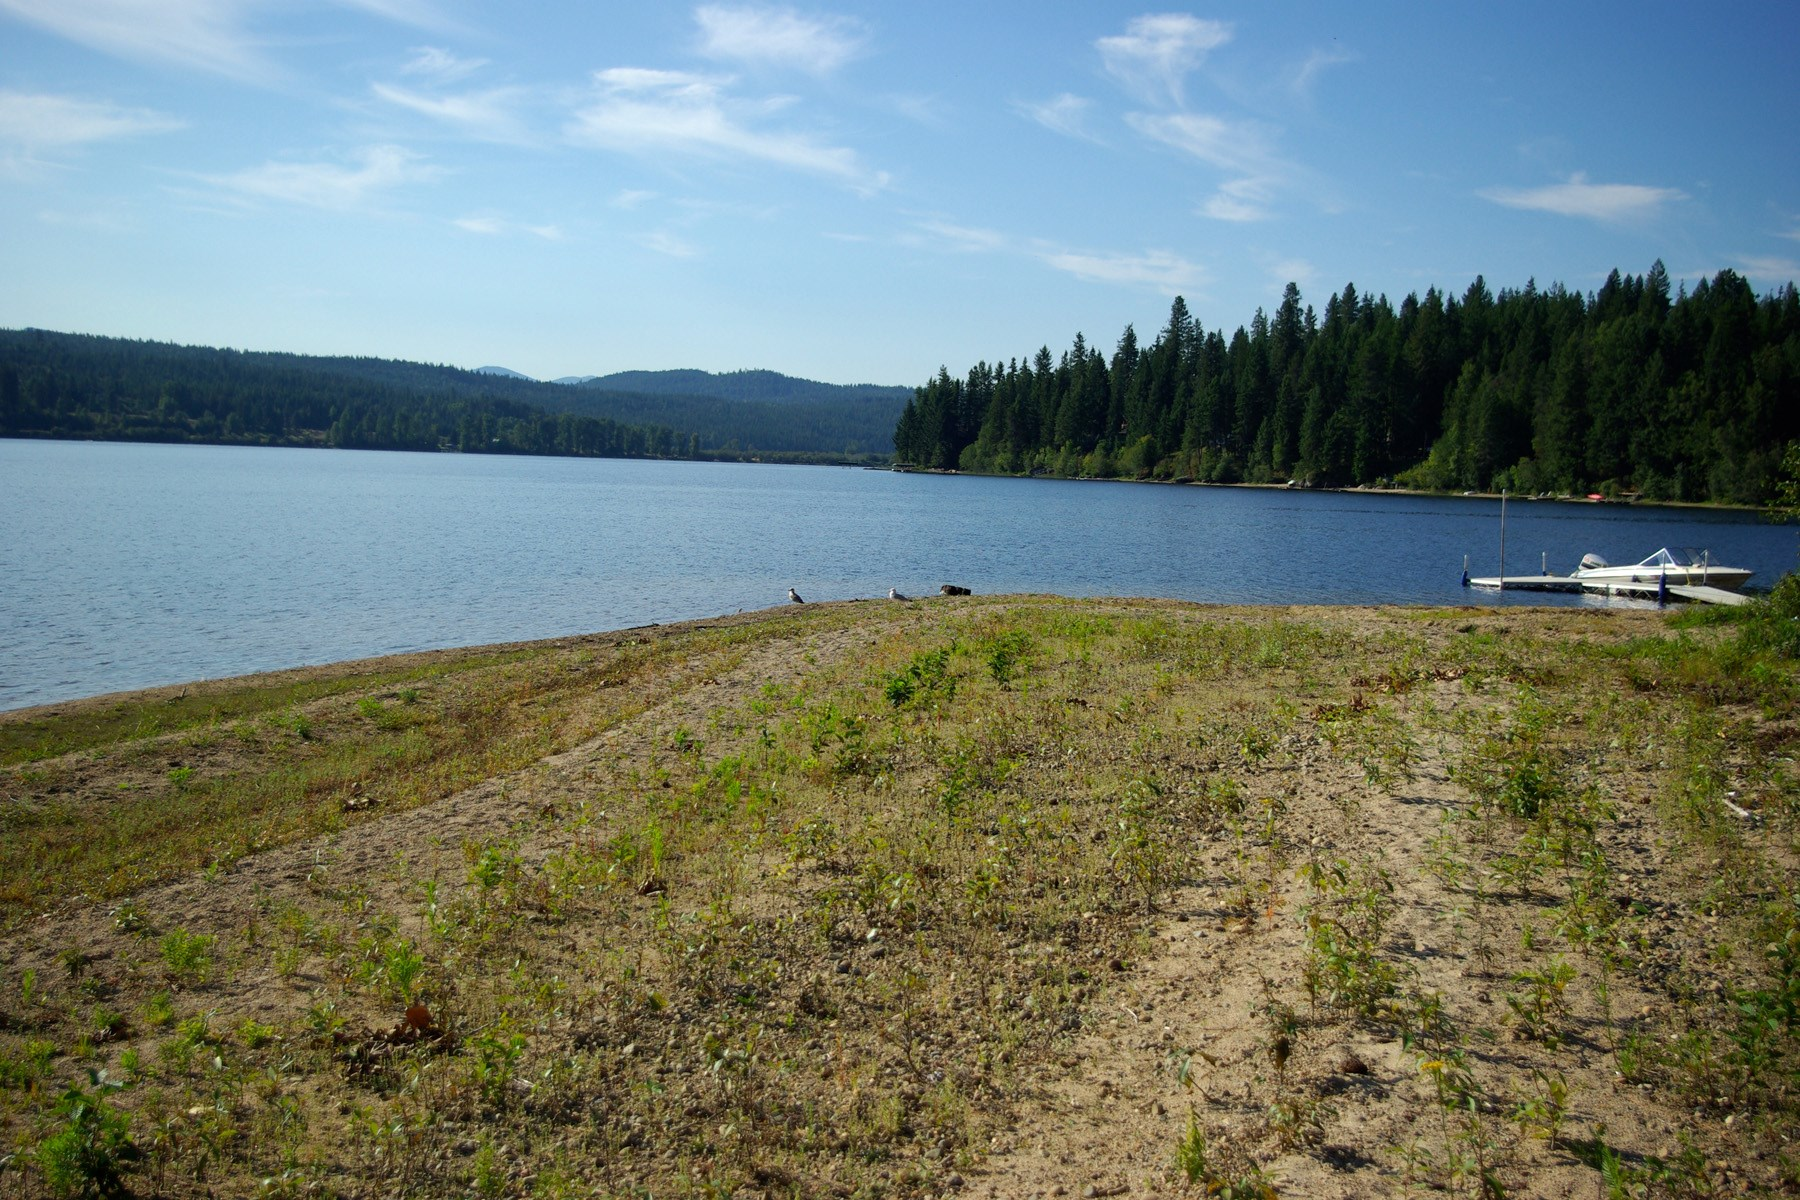 Land for Sale at Your own private sandy beach on Lake Cocolalla, Lot 9 Lot 9 Sandy Beach Ln Cocolalla, Idaho 83813 United States